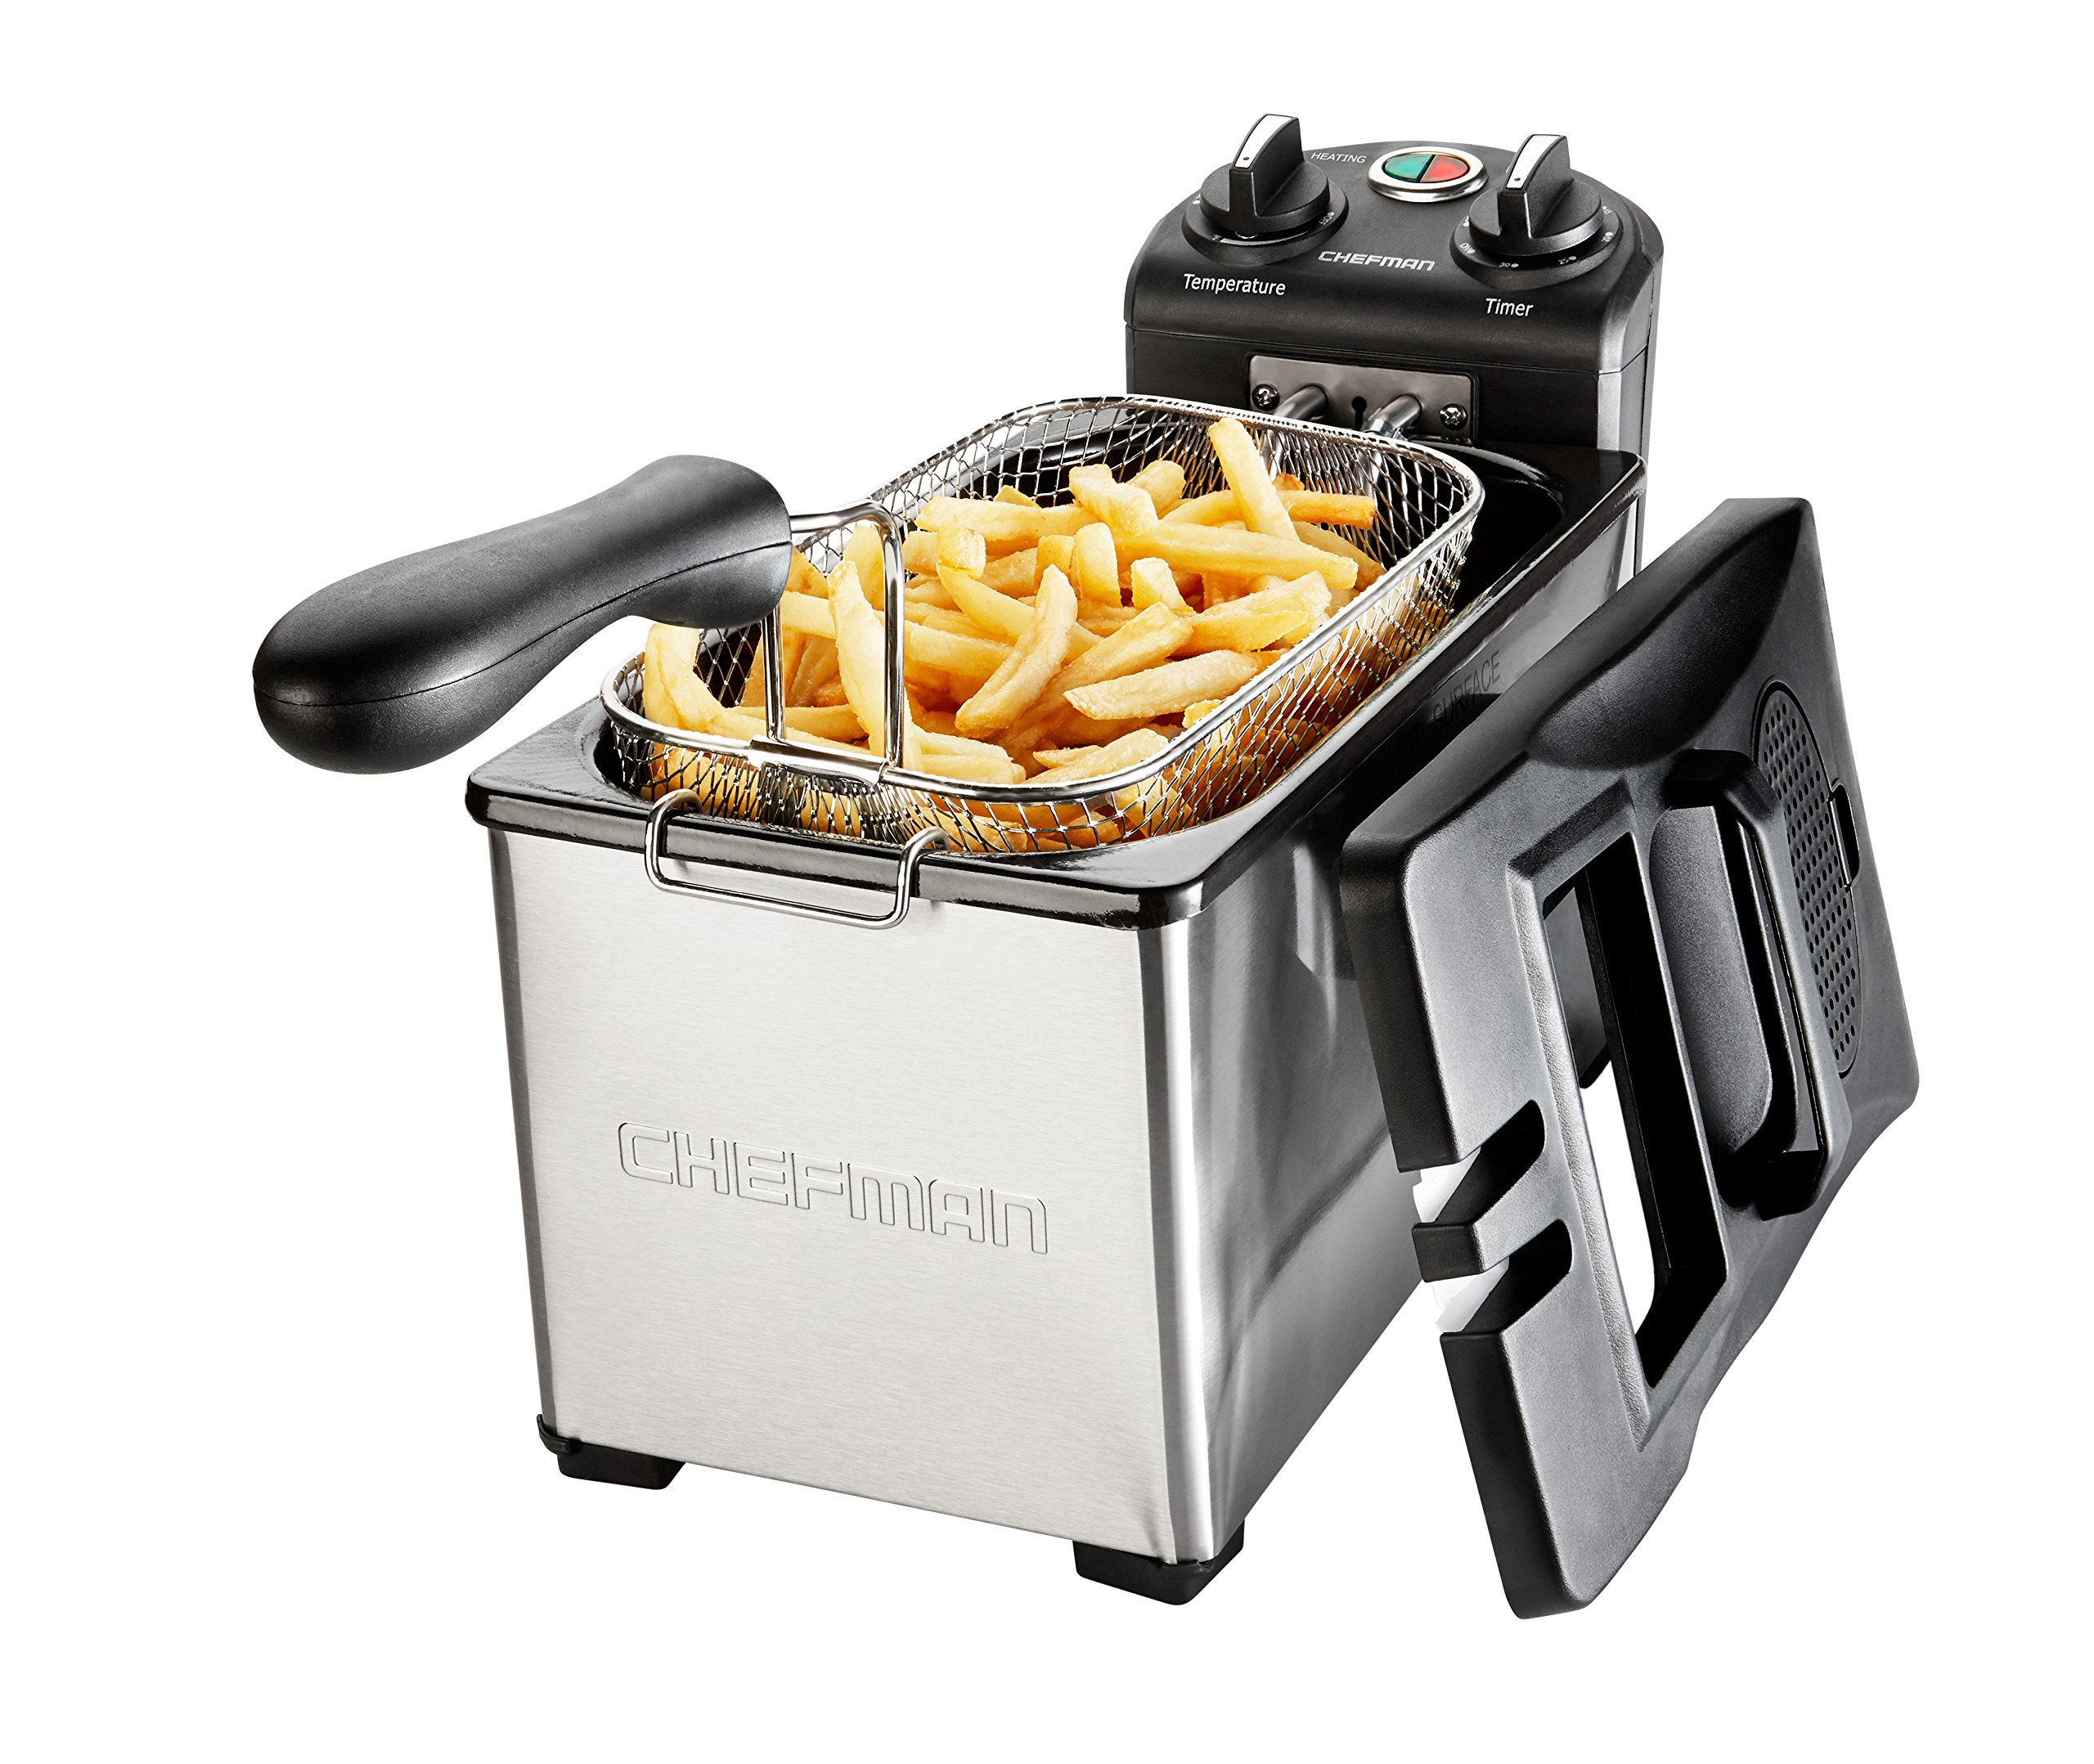 Chefman Deep Fryer 3.7 Quarts, Stainless-steel with Rotary Knob for Adjusting the Temperature, Removable Oil Container - RJ07-3SS-T by Chefman (Image #2)